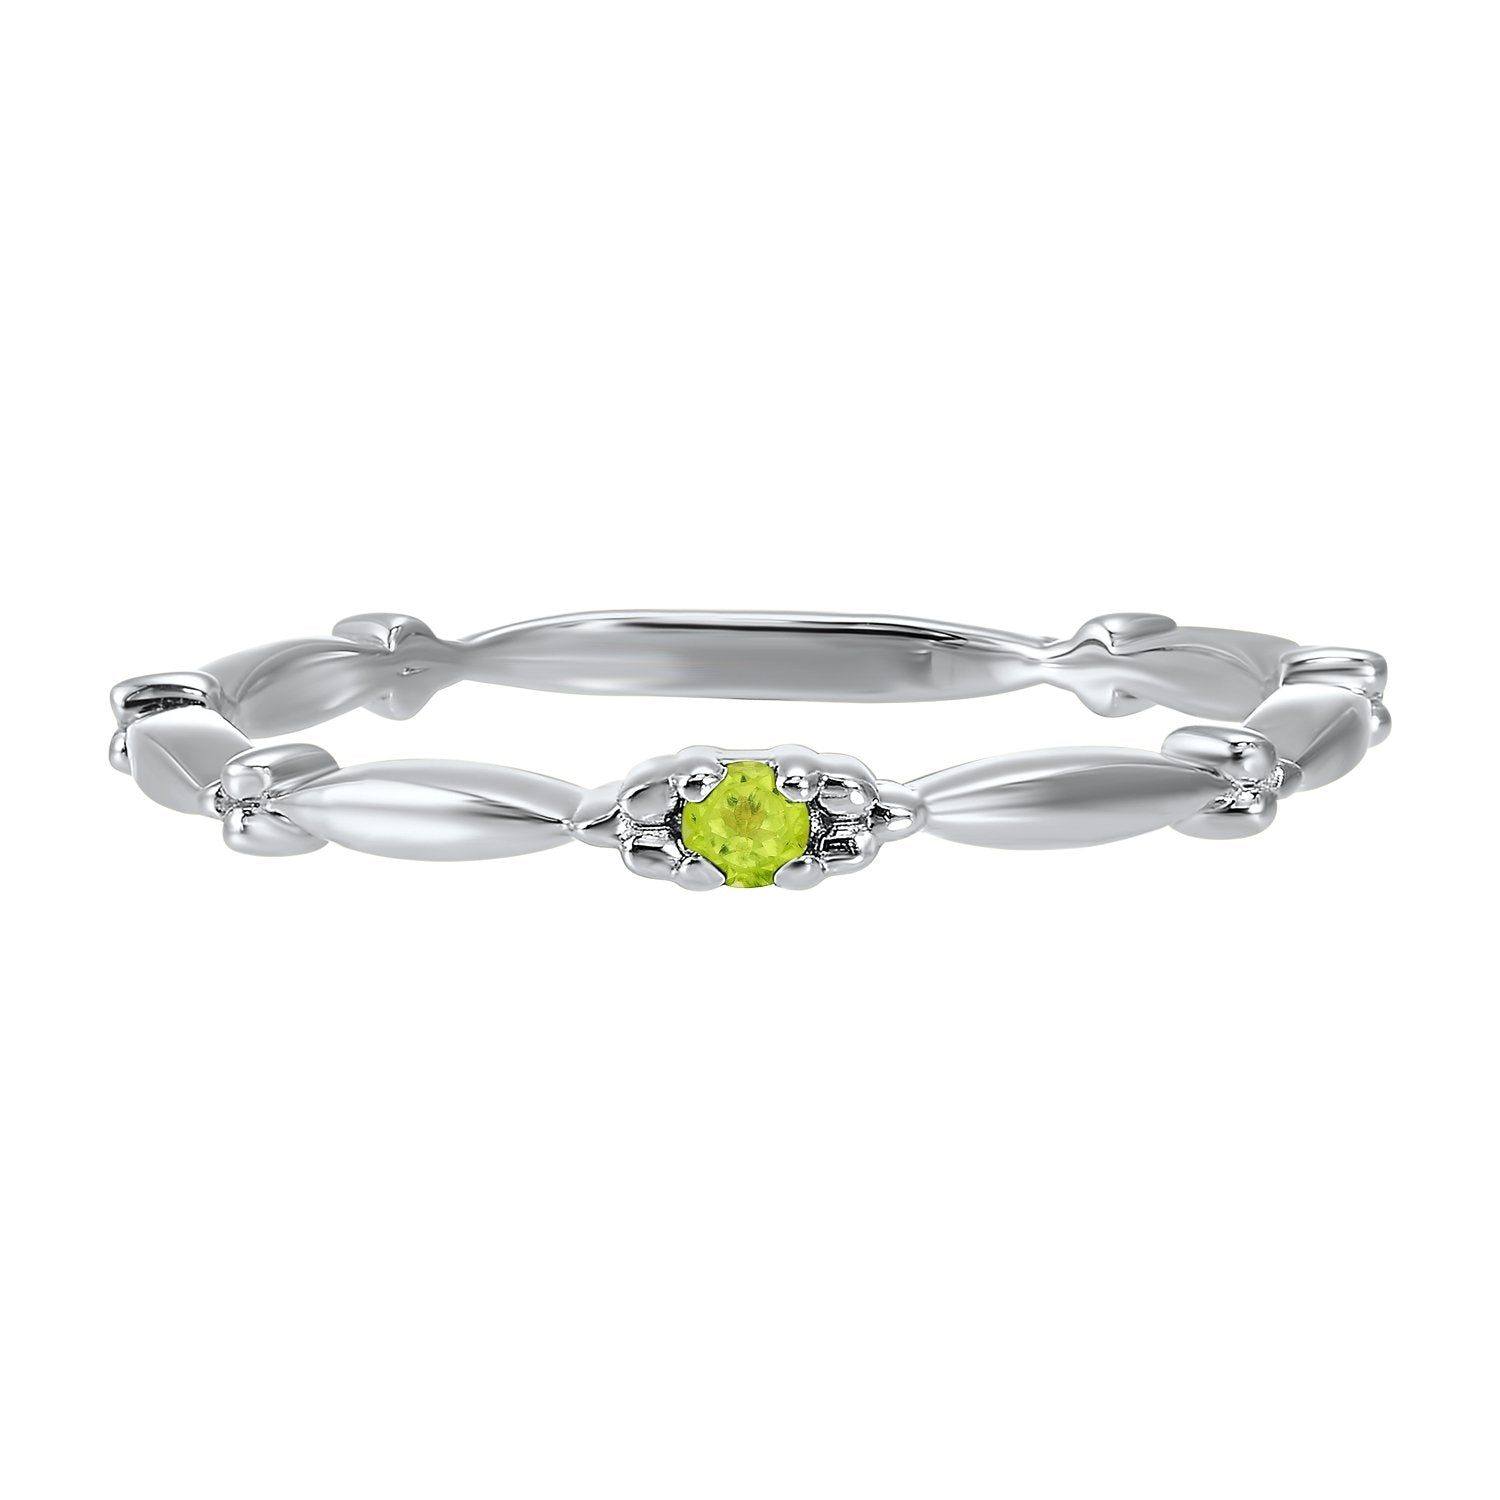 10K White Gold Stackable Prong Peridot Band